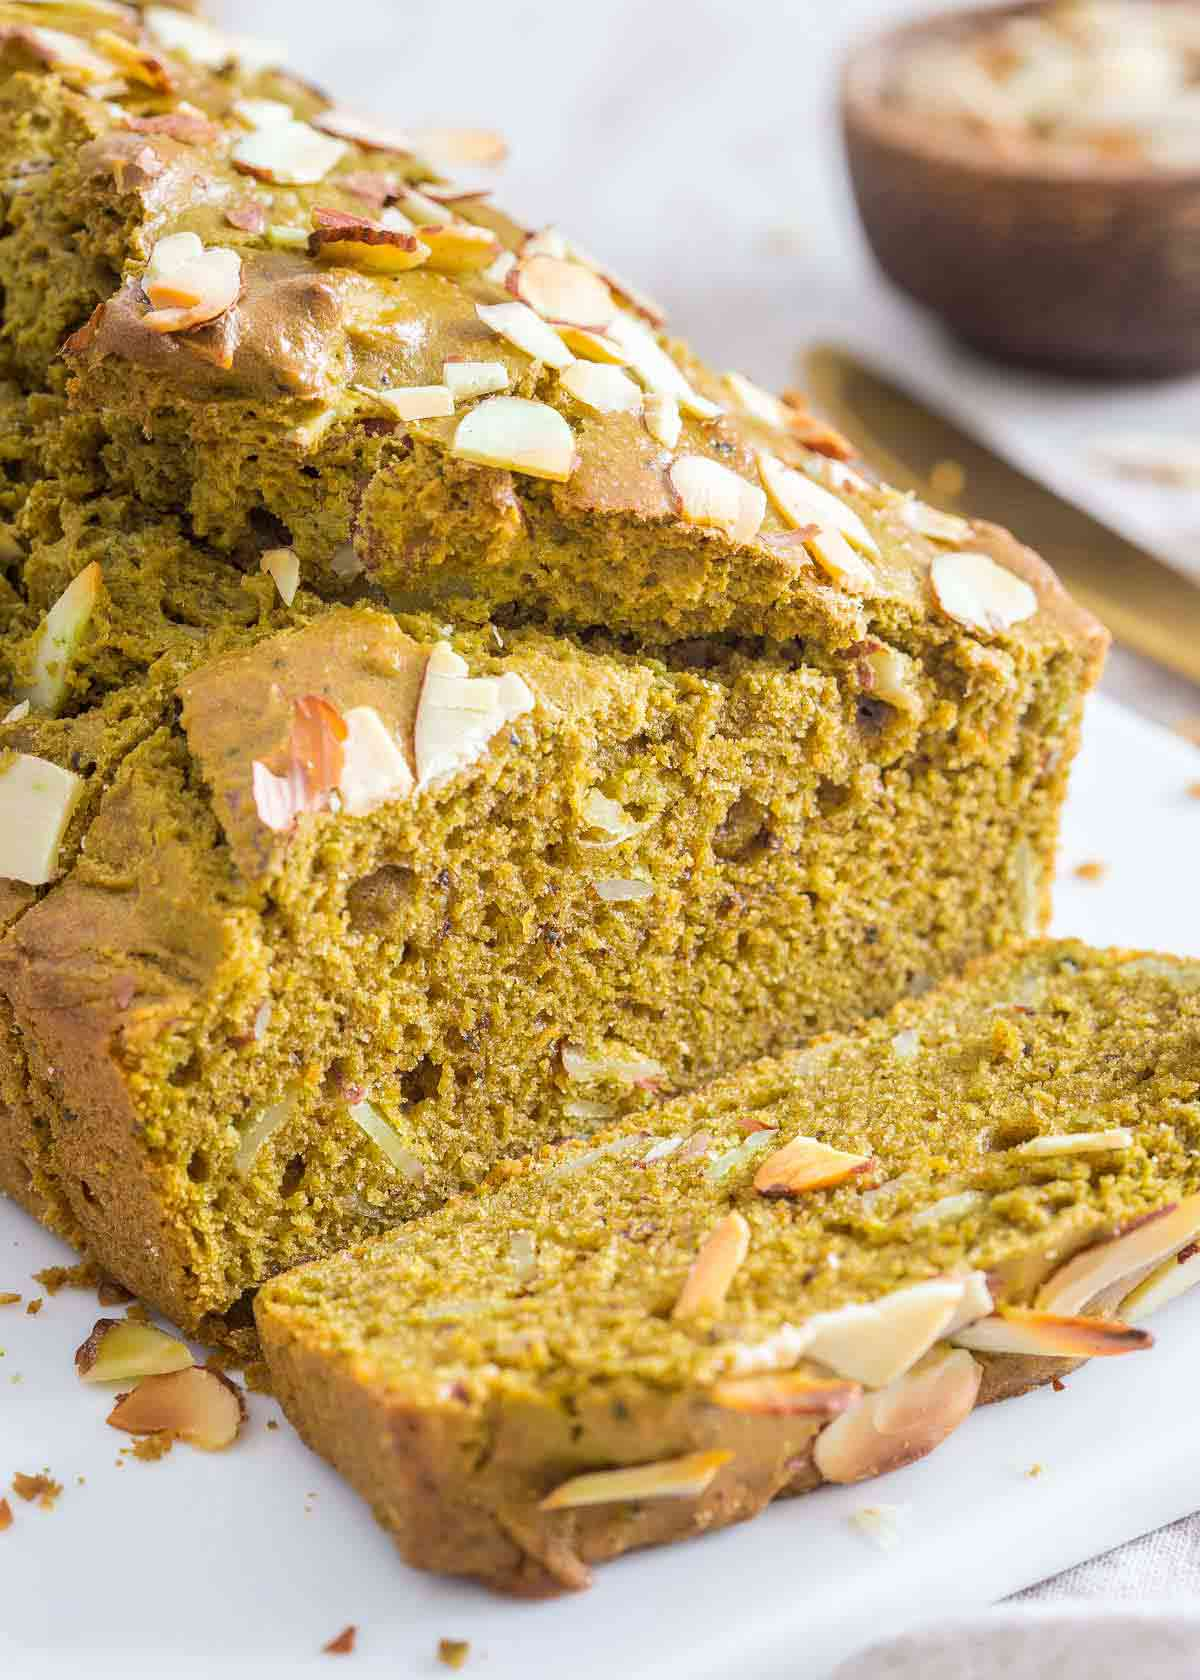 This matcha bread recipe uses almond flour, almond extract and sliced almonds for a lovely moist and aromatic quick bread with all the benefits of green tea powder.